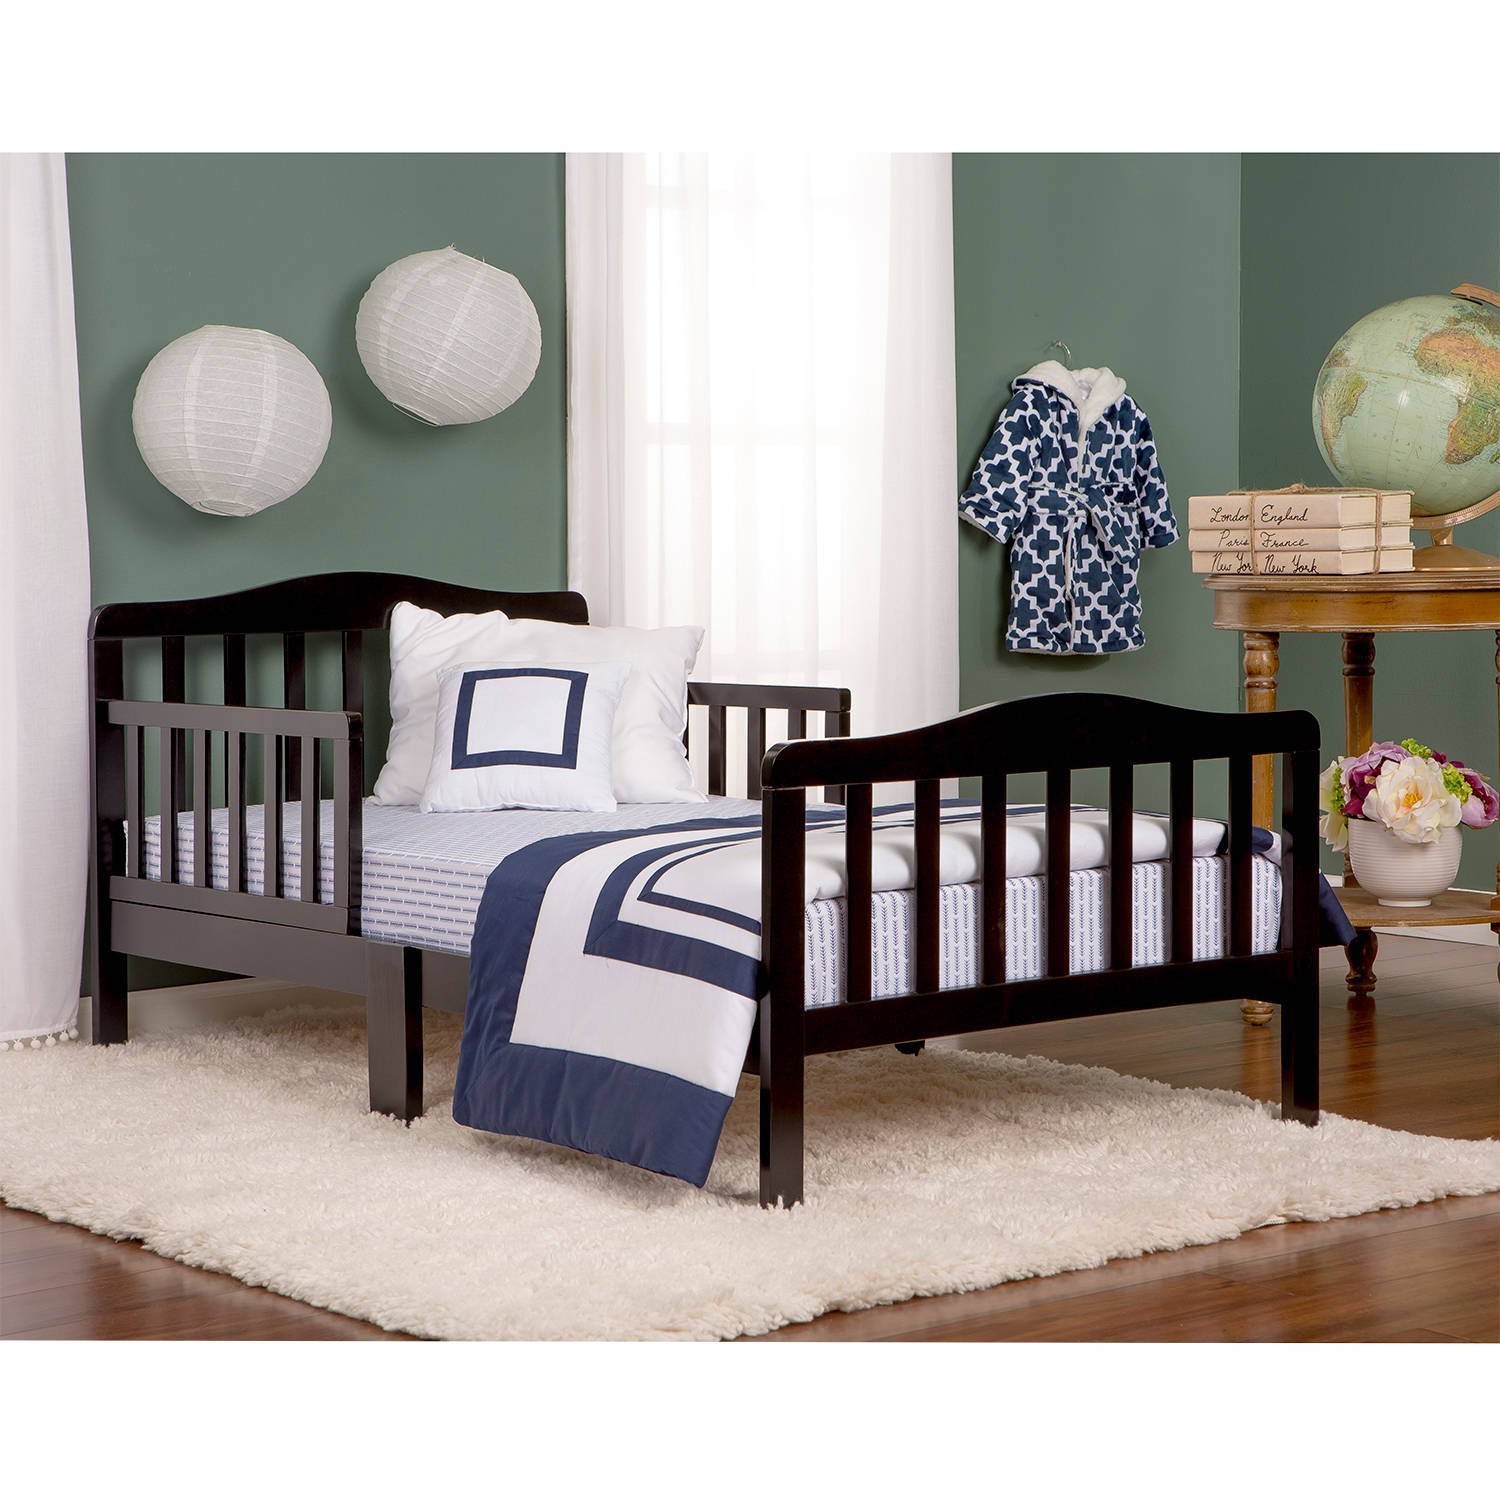 Good Dream On Me Classic Design Toddler Bed, Choose Your Finish   Walmart.com